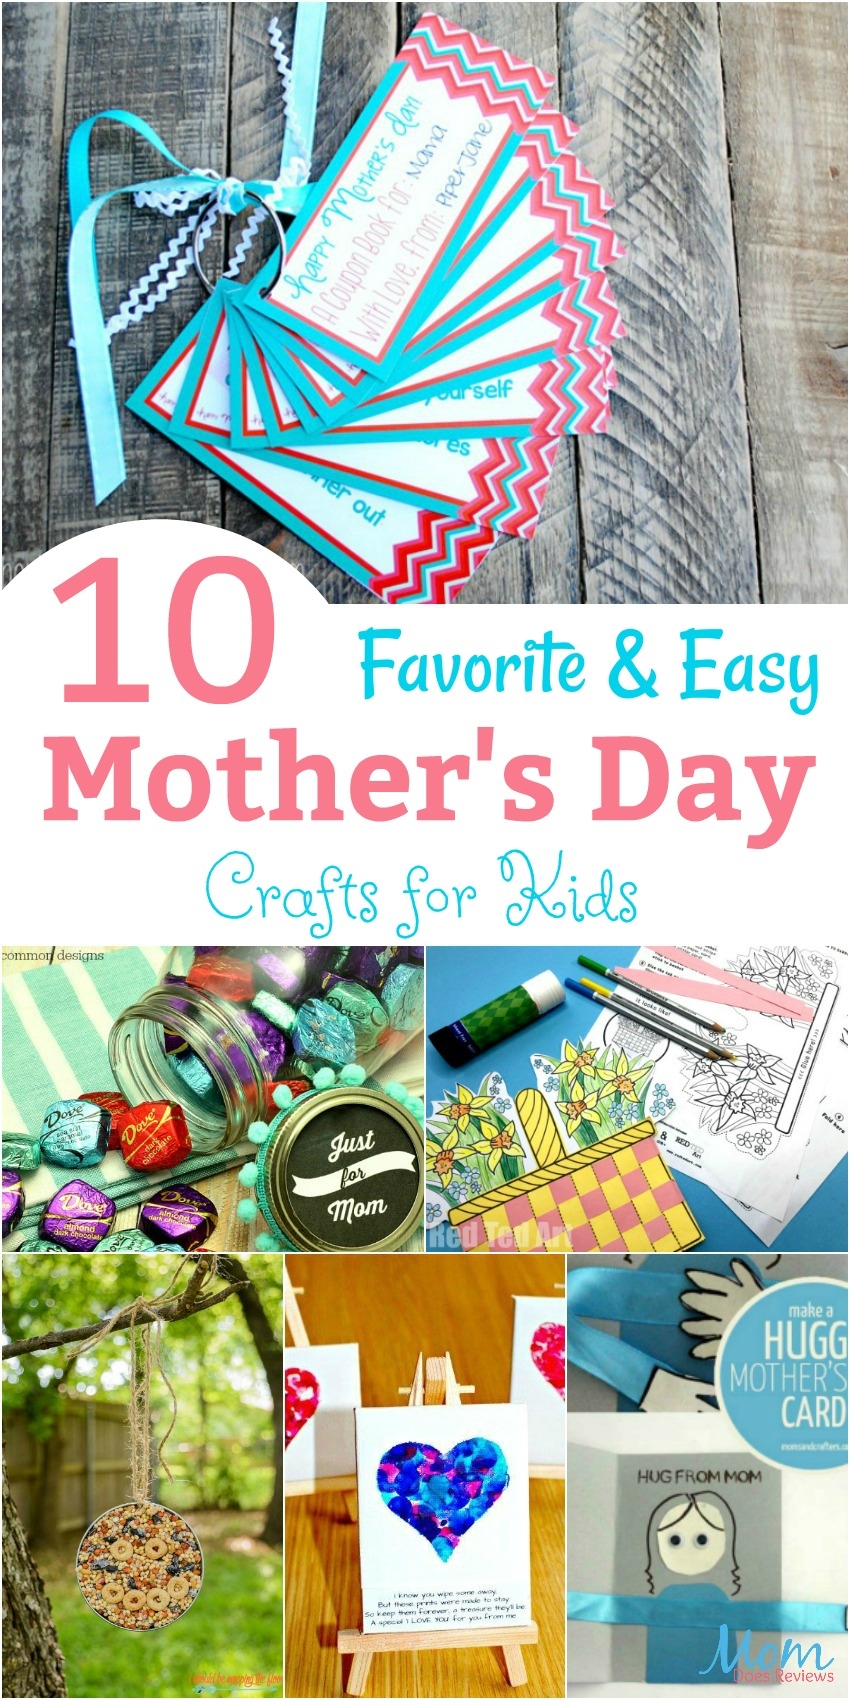 10 Favorite and Easy Mother's Day Crafts for Kids banner